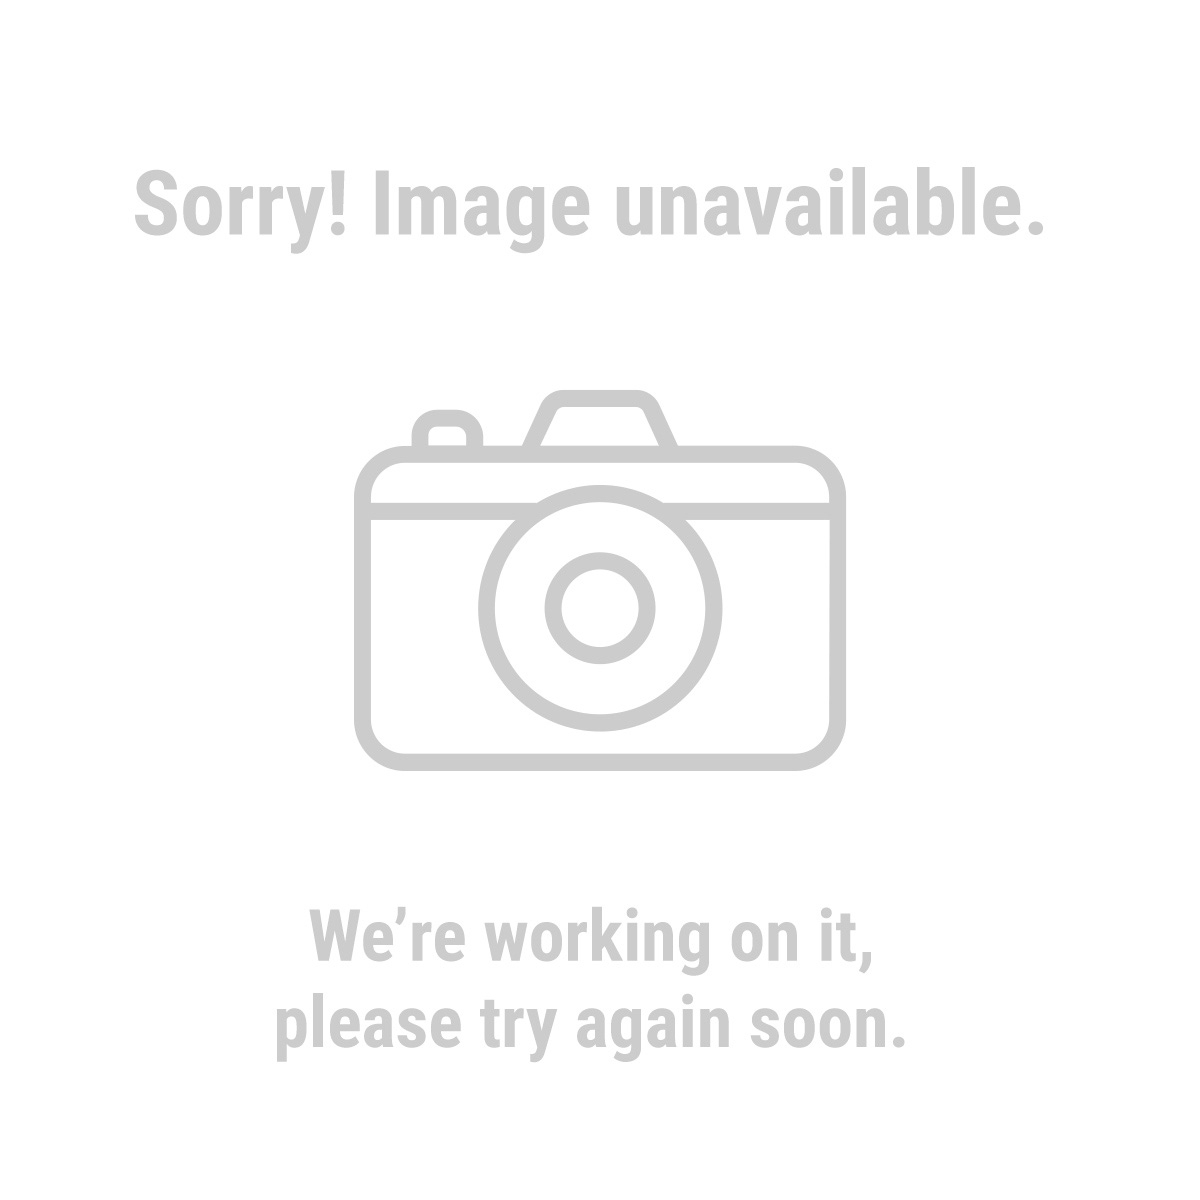 Gordon 60337 5 Piece Scissors Set